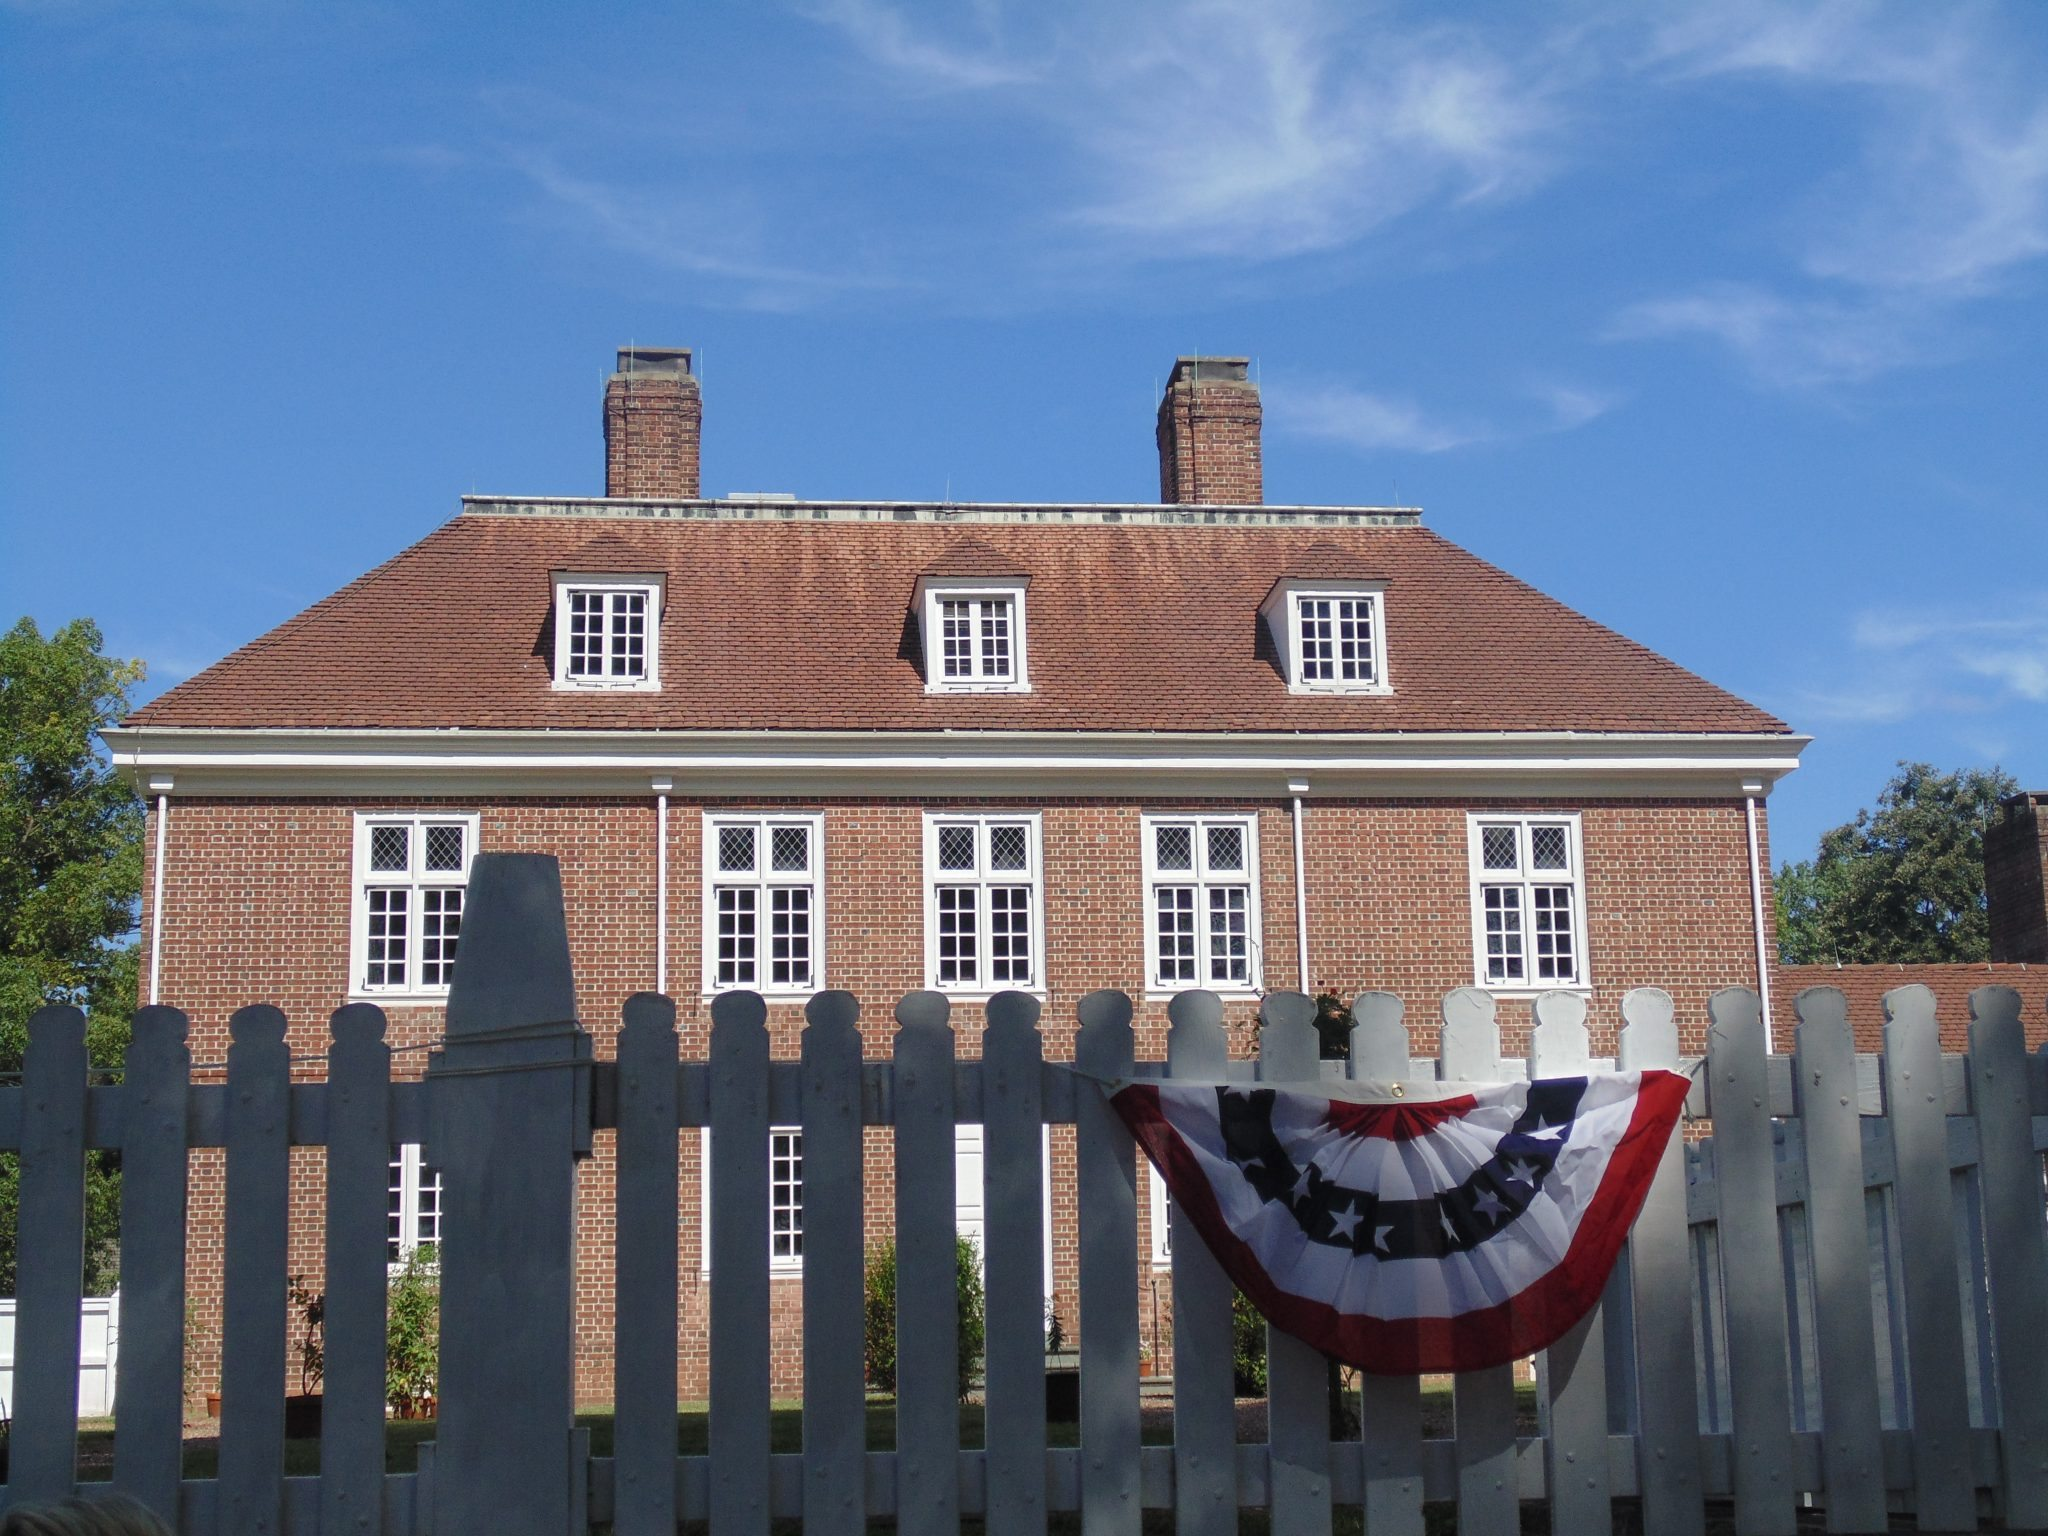 '100,000 Welcomes' Issued During Pennsbury Manor's Naturalization Ceremony